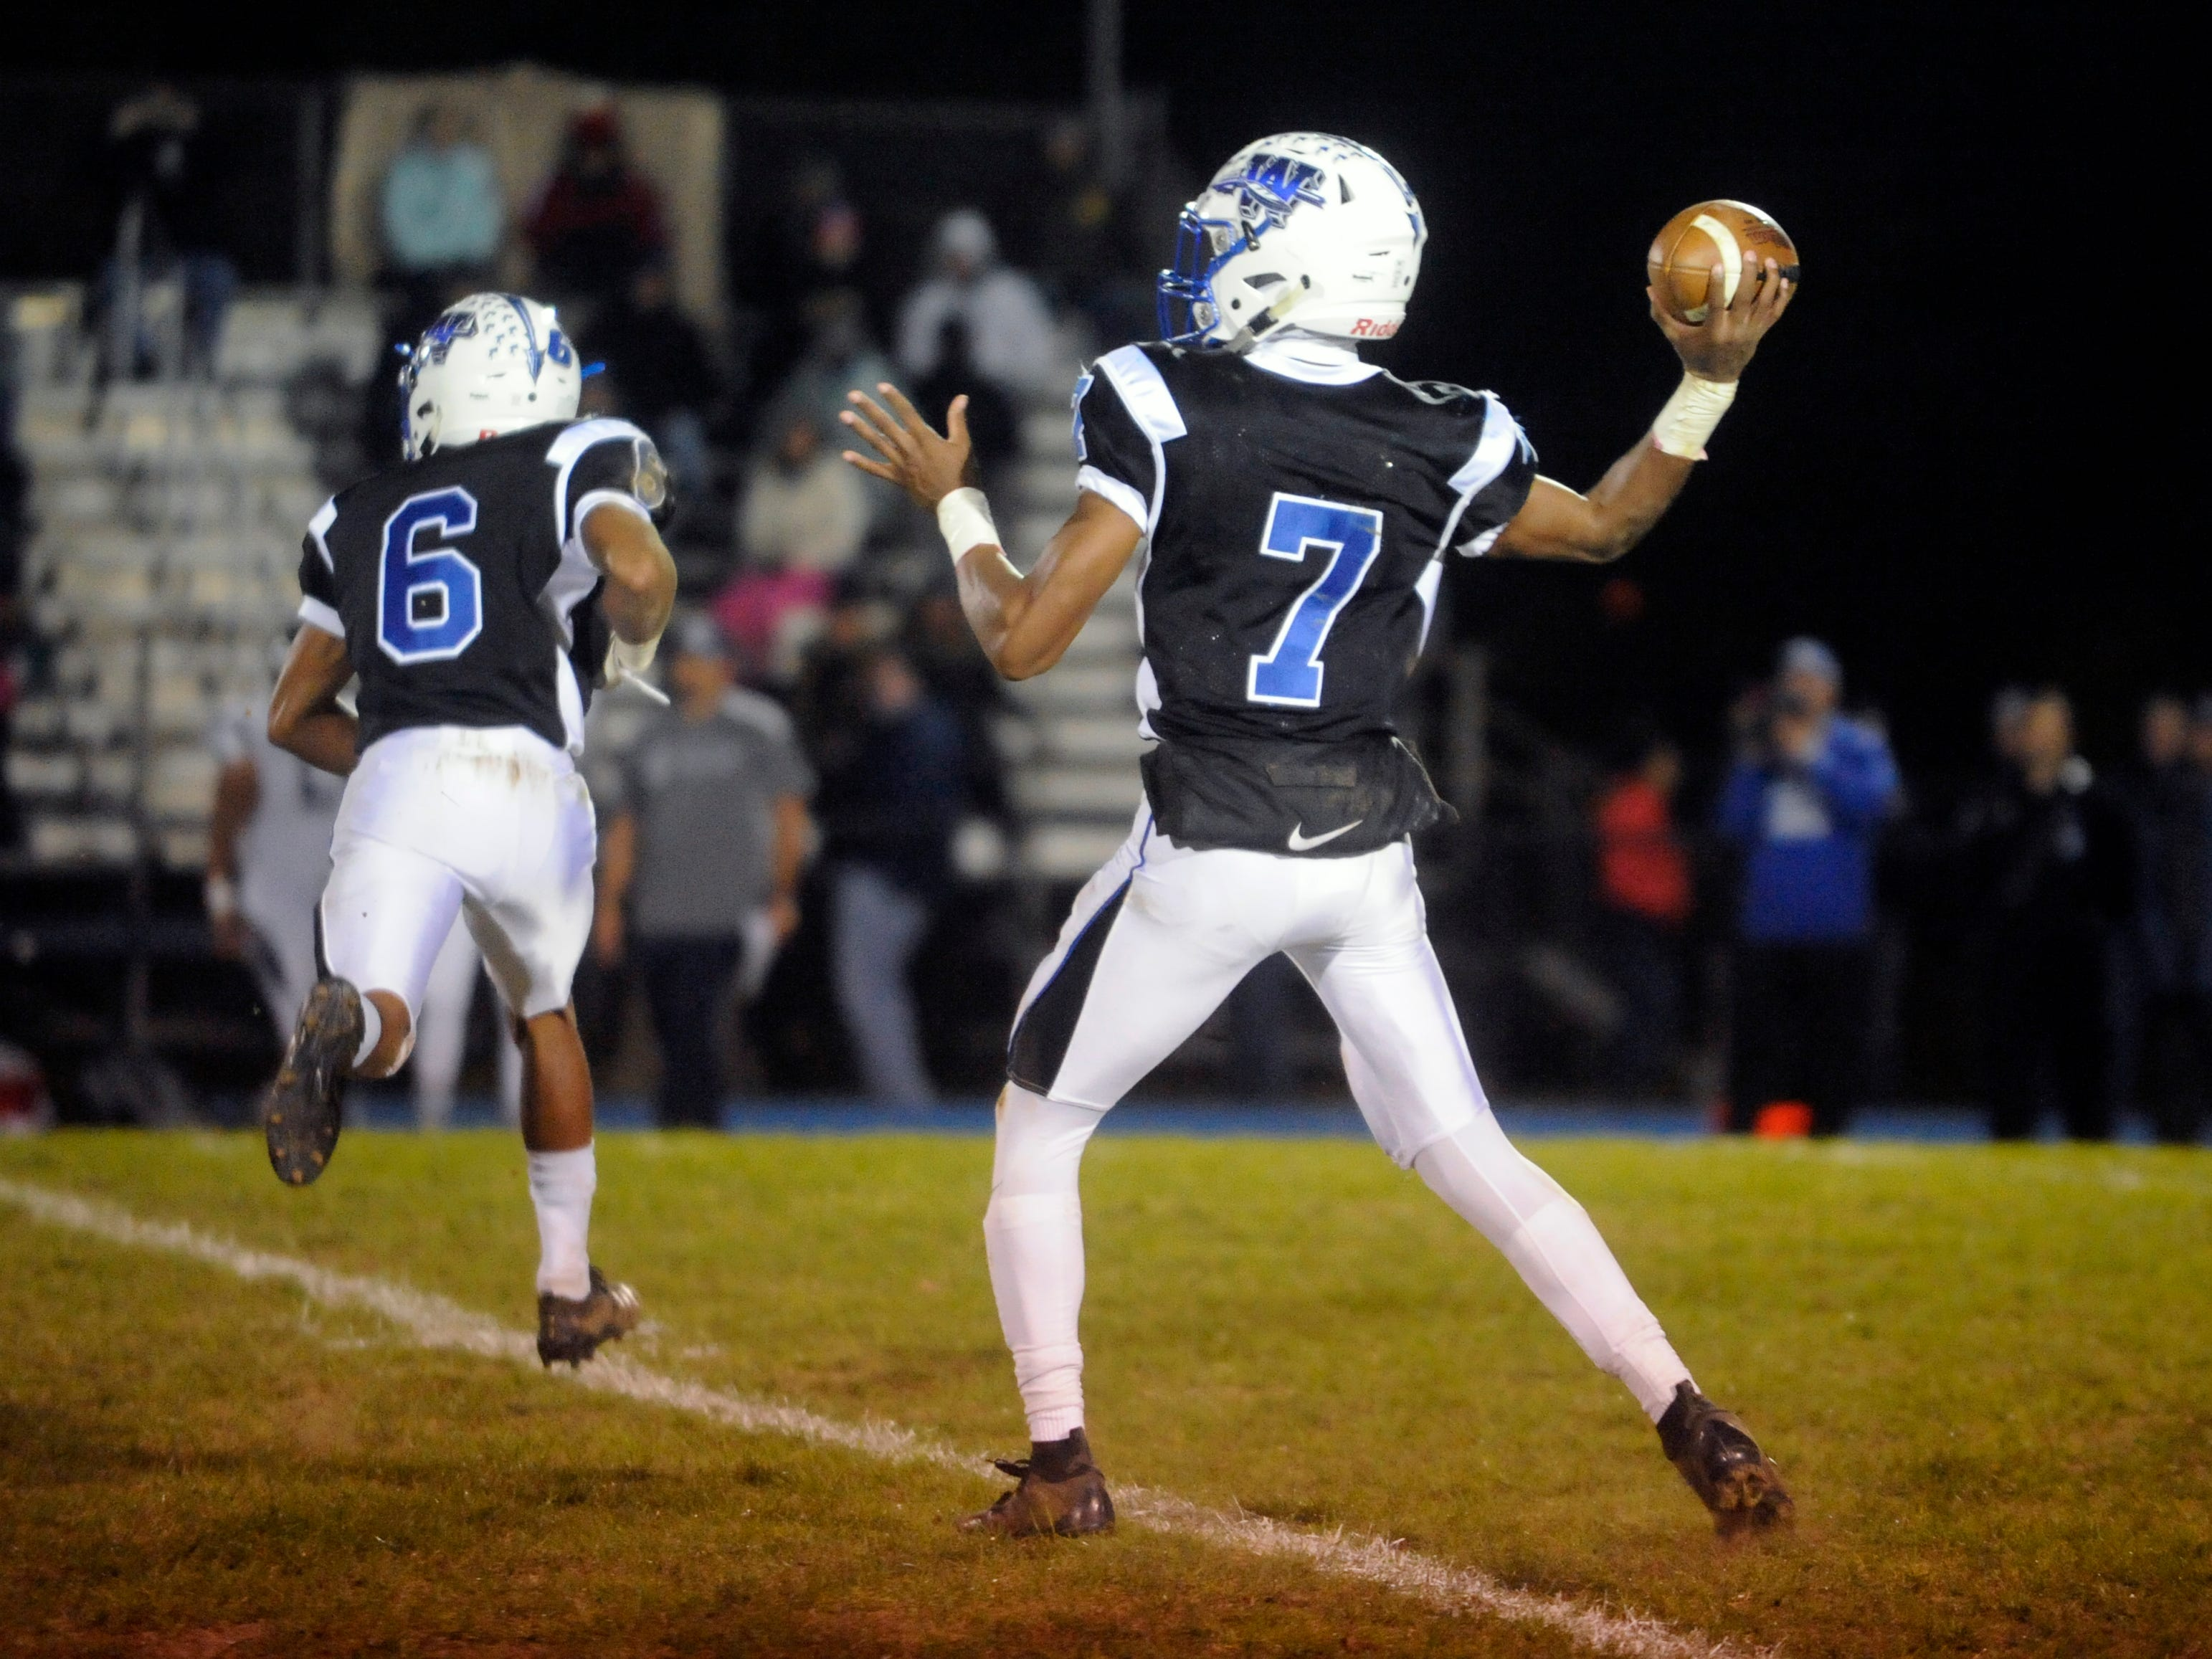 Williamstown QB, Jonathan Collins passes the ball during a game against visiting St. Augustine. The Braves topped the Hermits, 14-7, on Friday, October 26, 2018.